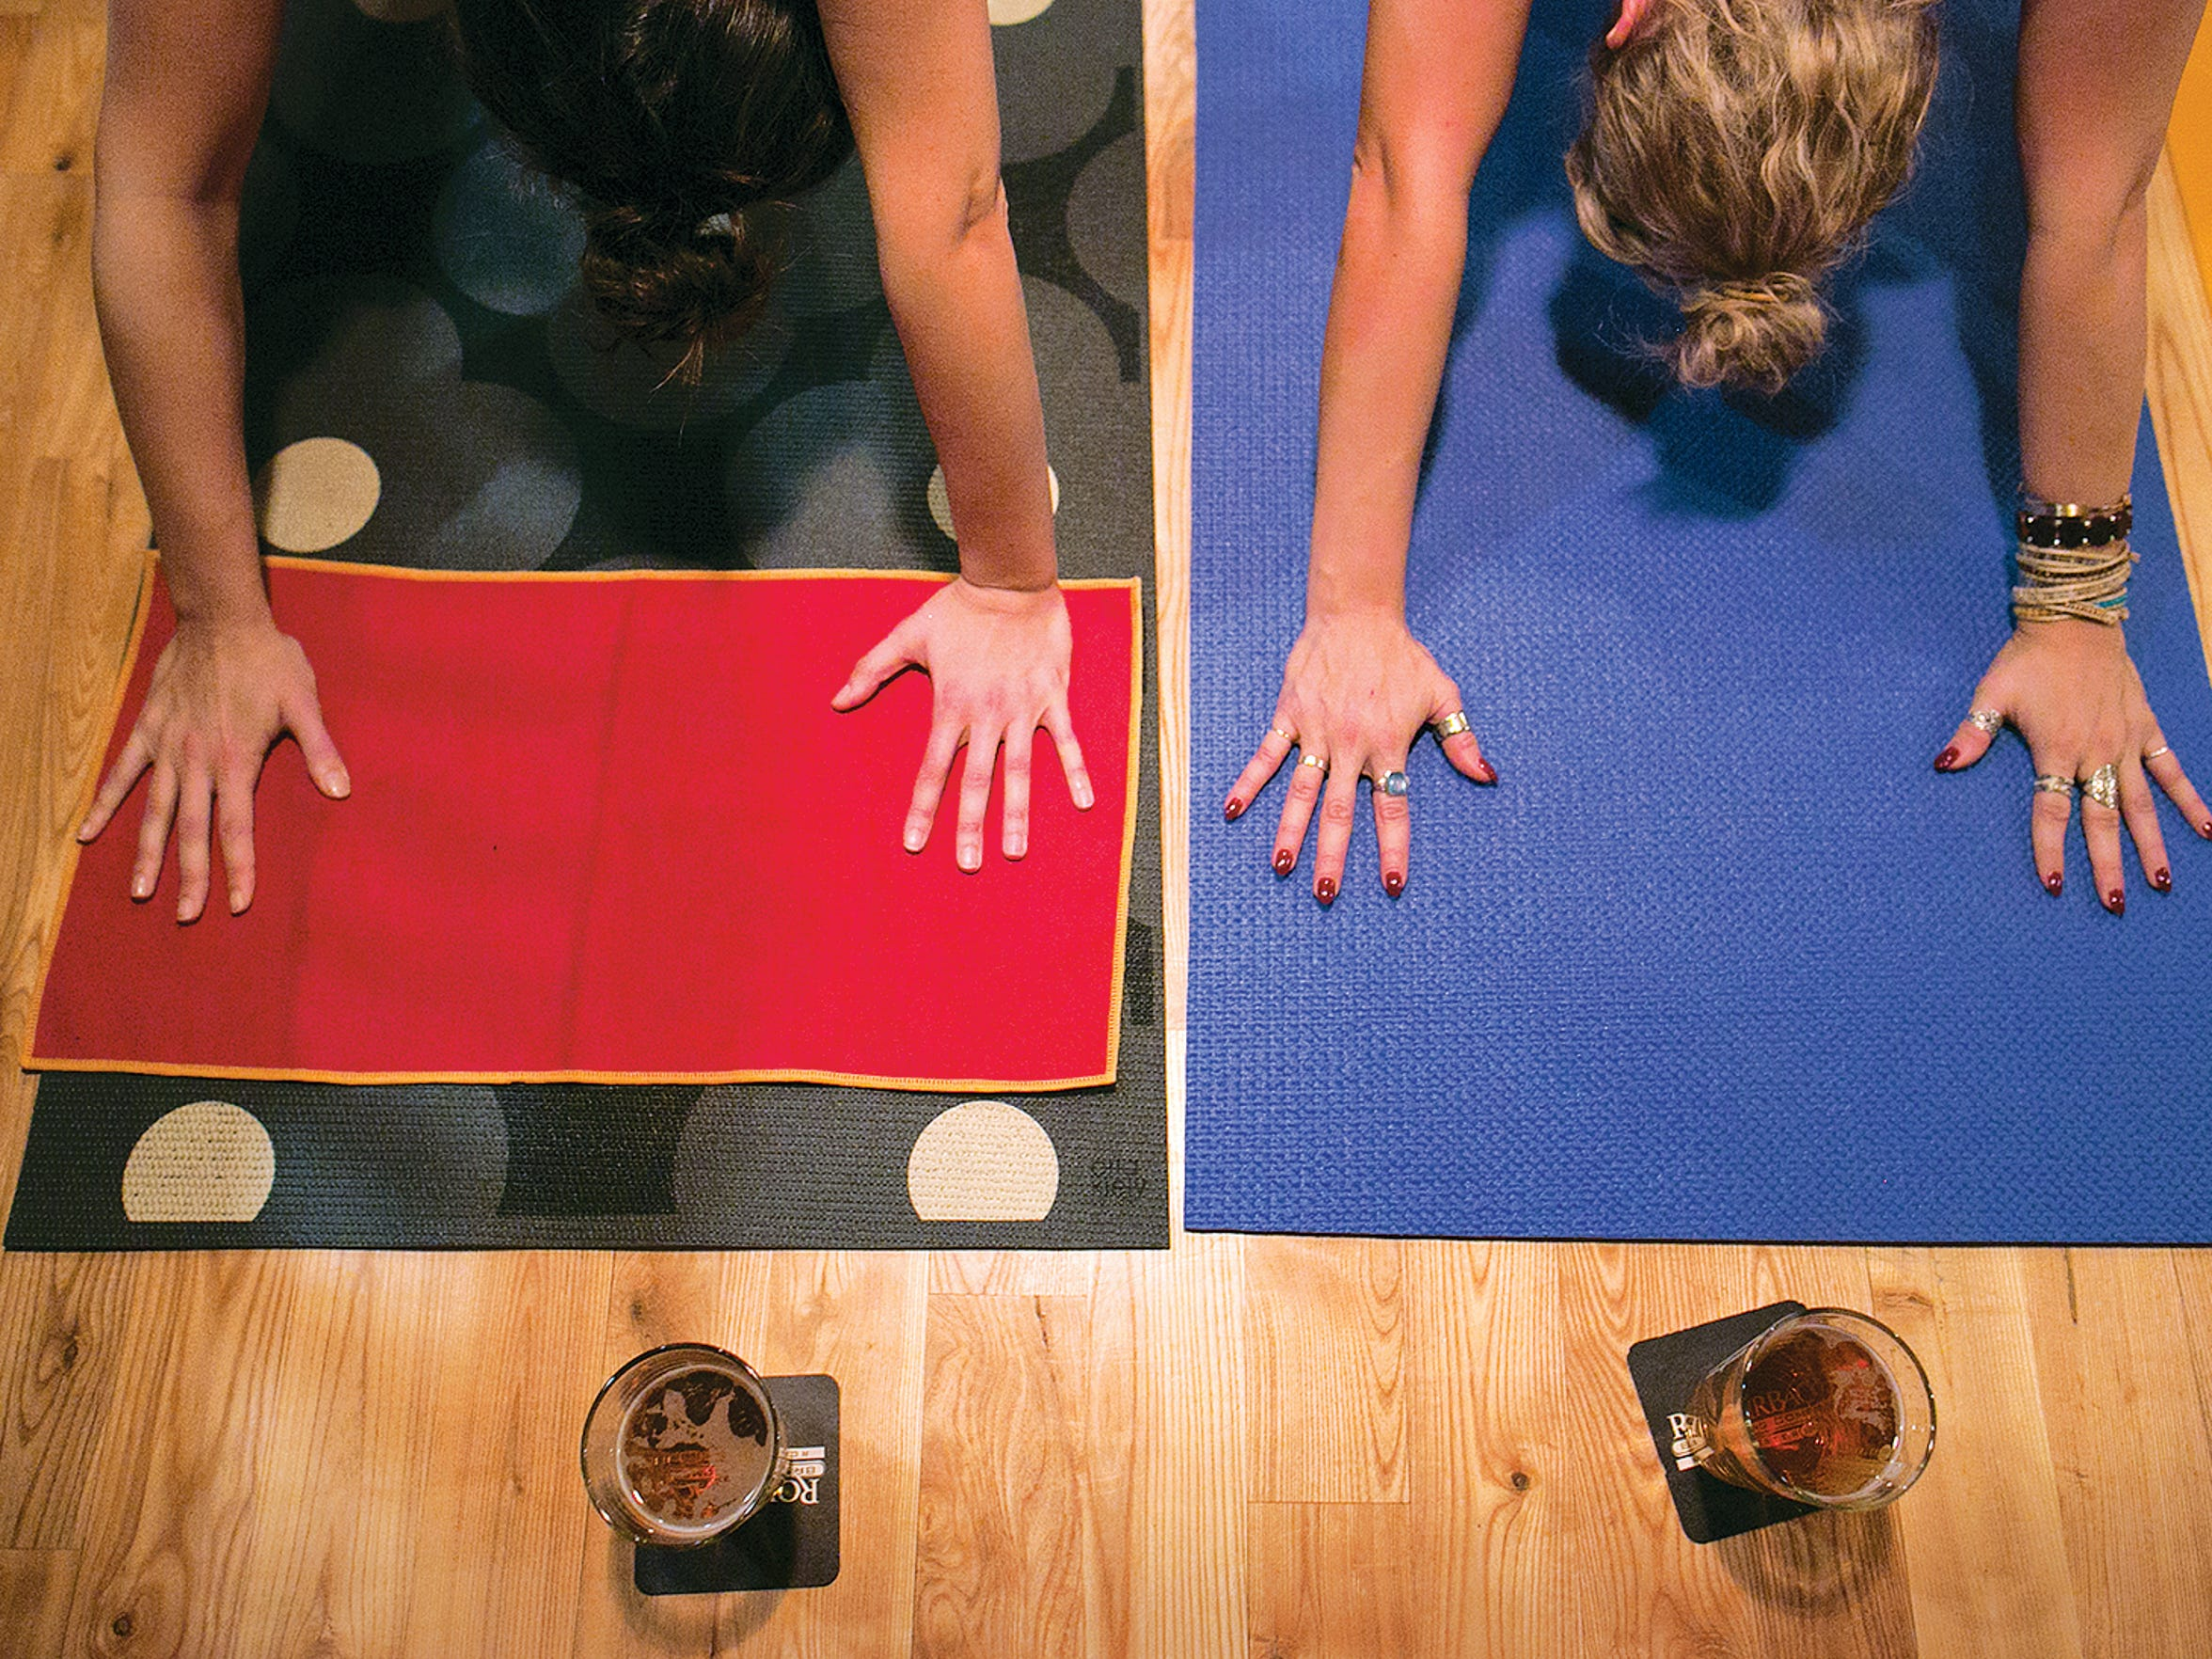 Yoga meets booze at Brewga (seen here at Rohrbach Brewing